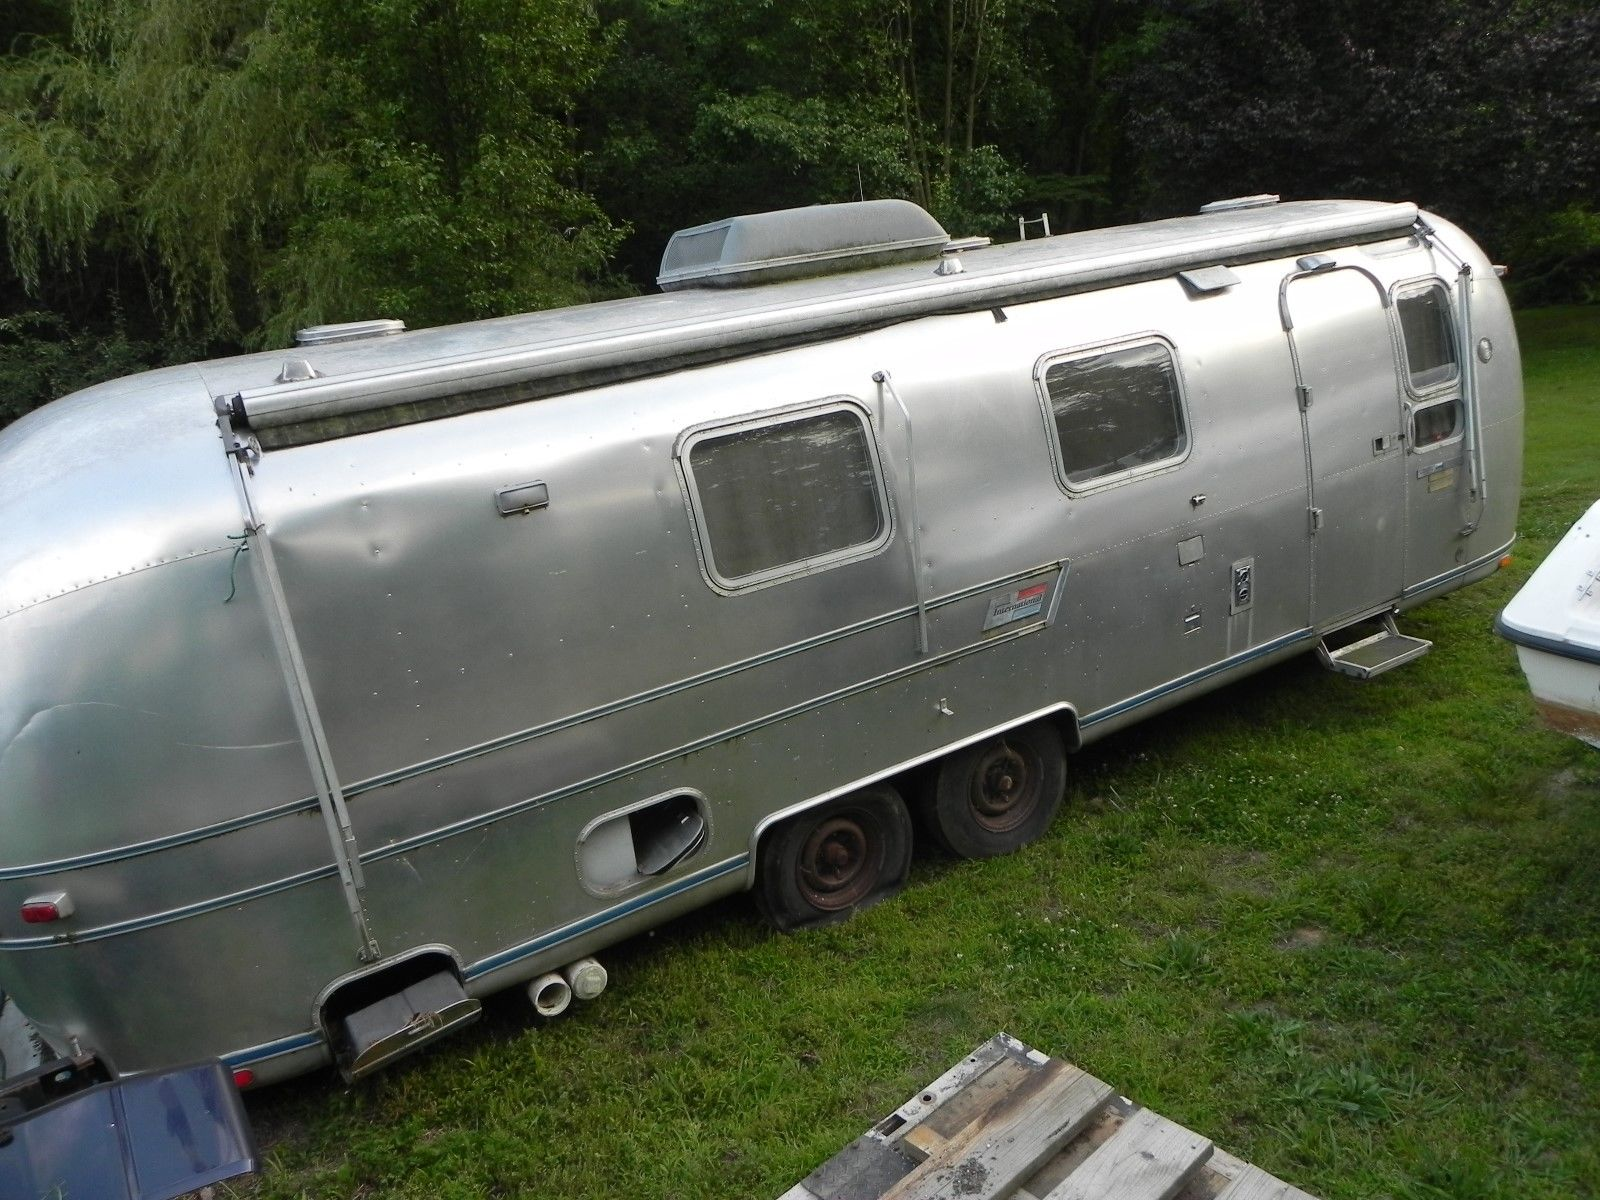 Antique 1974 Airstream Land Yacht camper trailer for sale